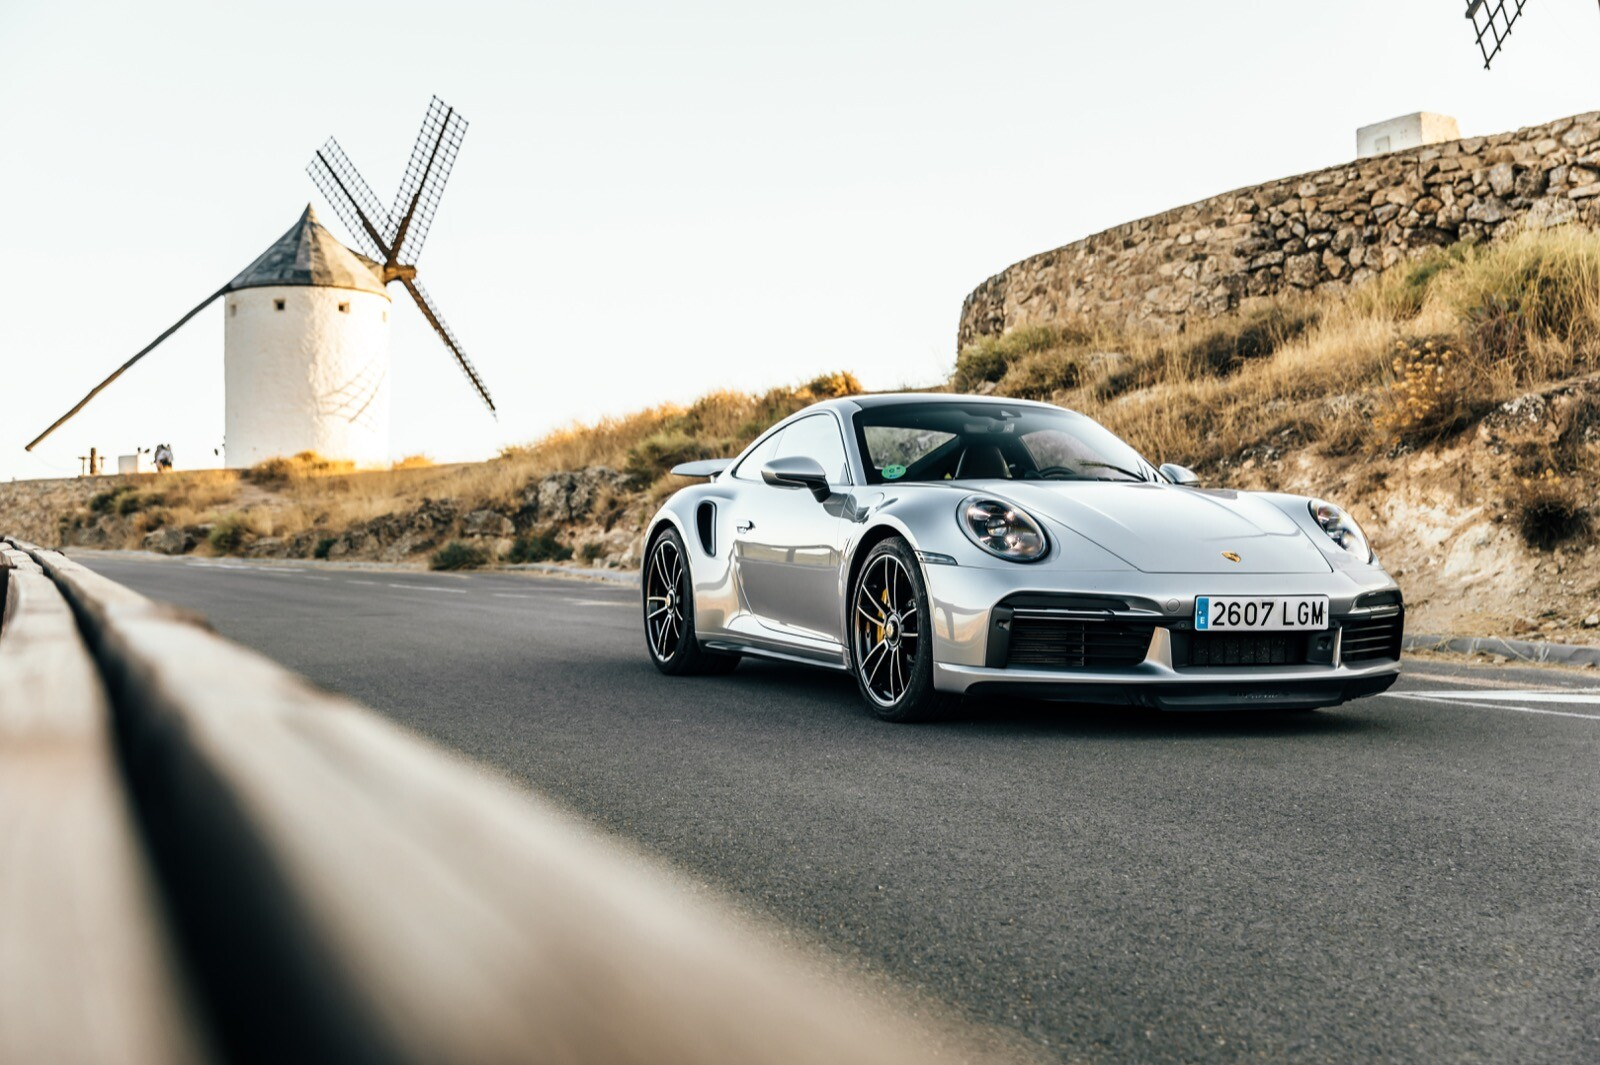 Porsche 911 Turbo S, un animal al acecho